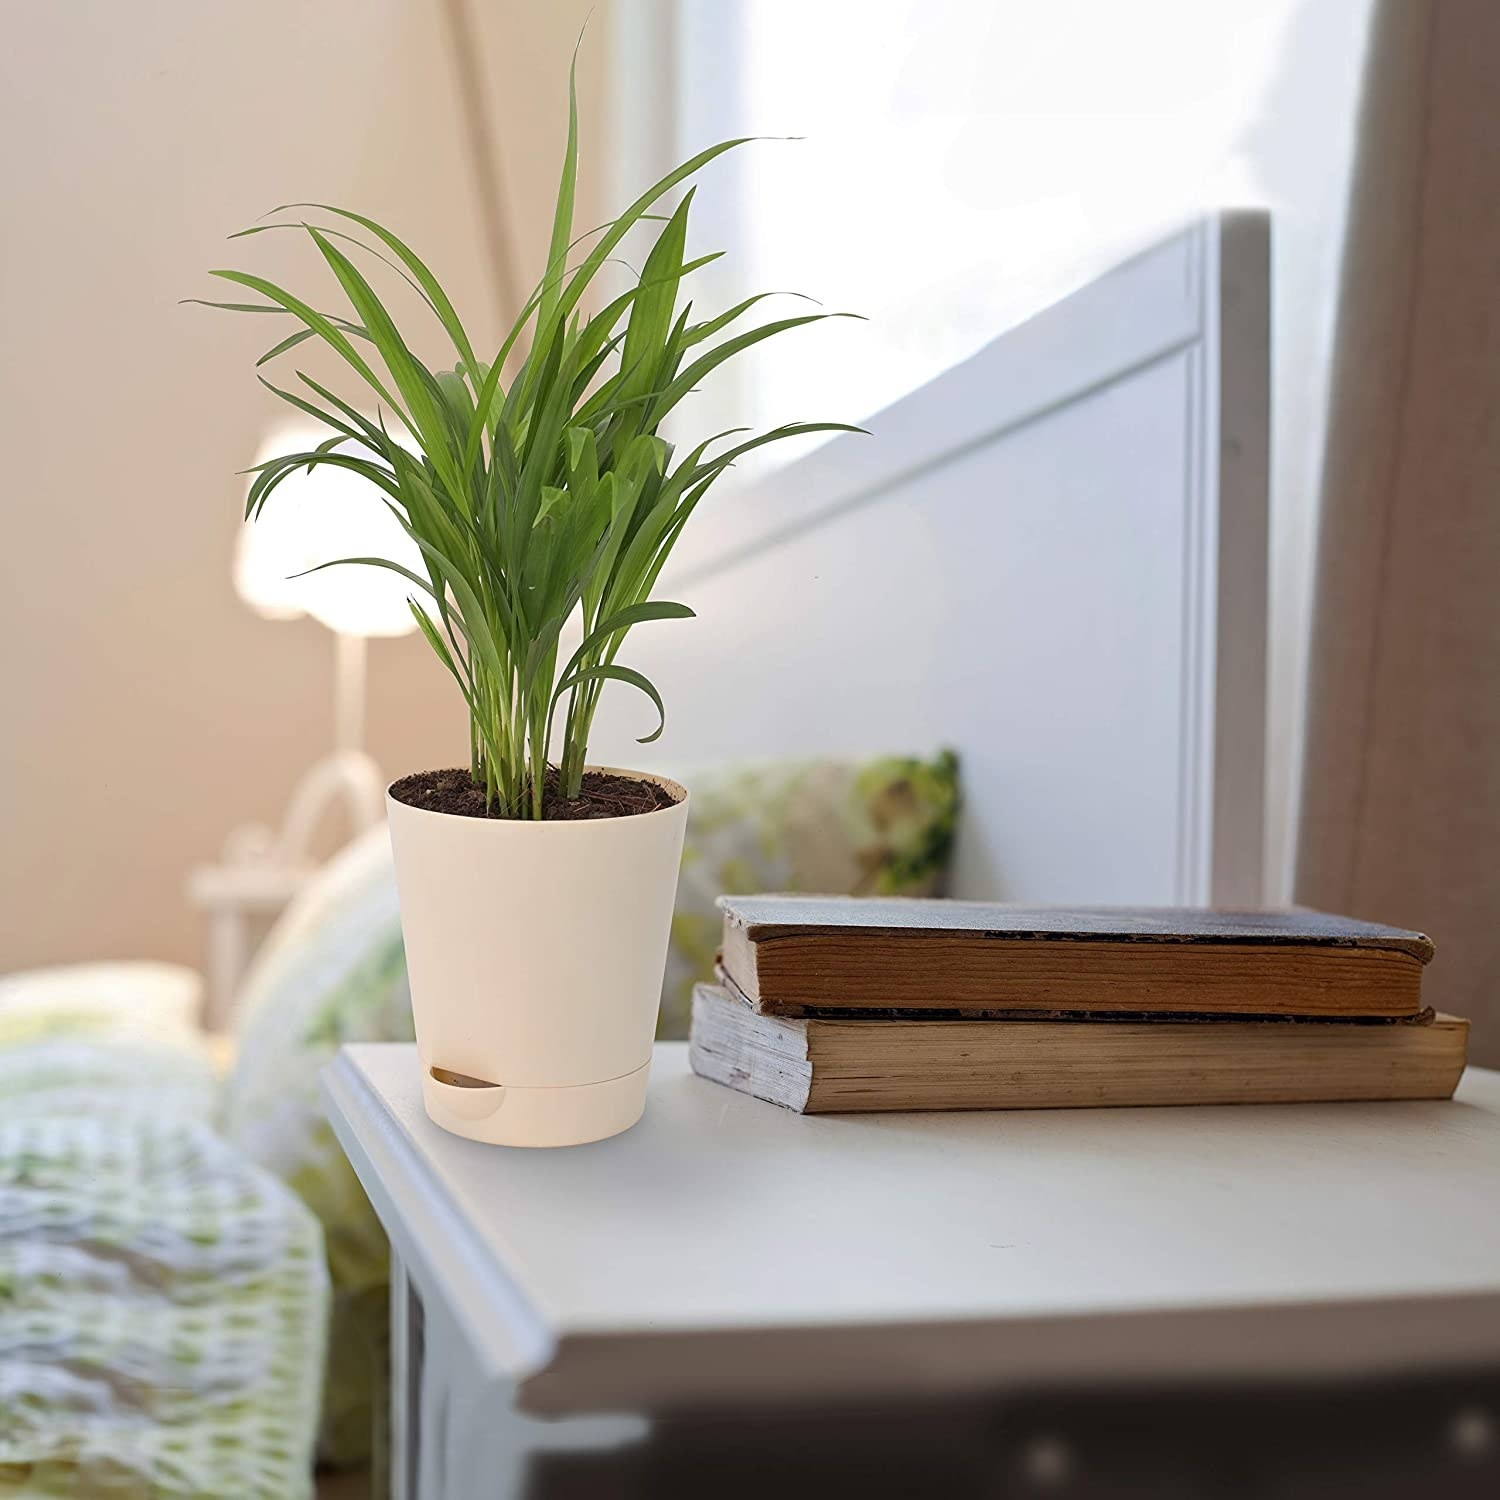 The plant kept on a bedside table with 2 books